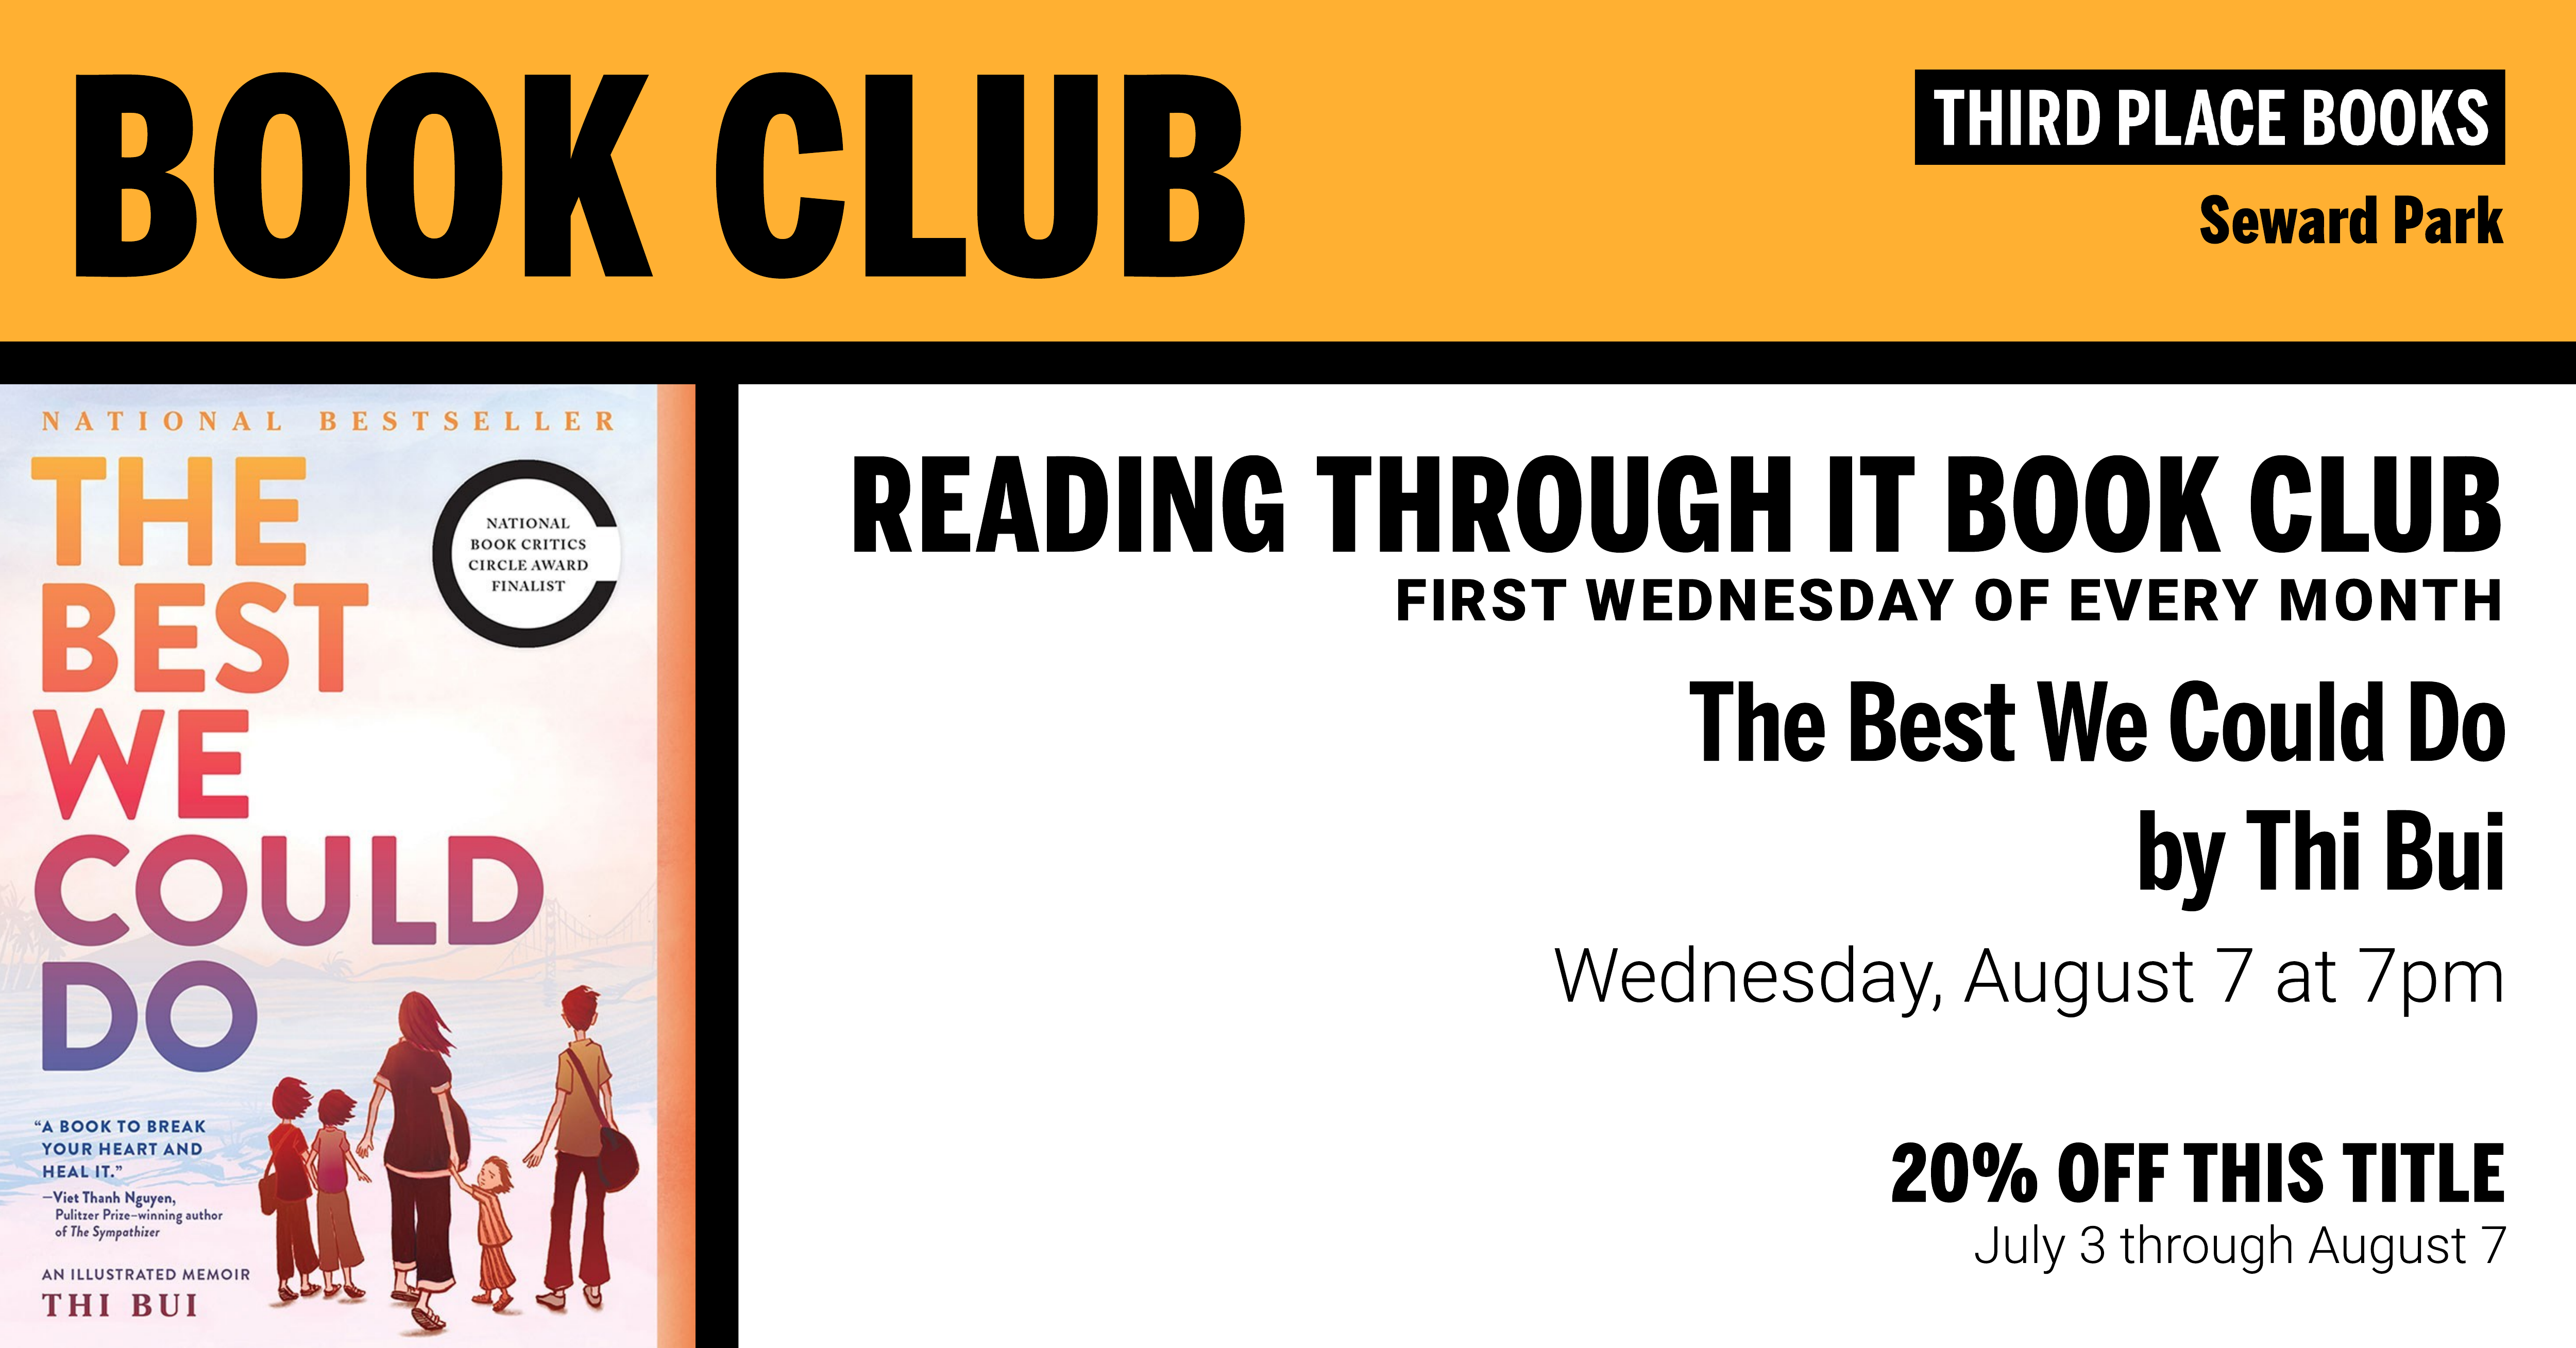 Reading Through It Book Club discussing The Best We Could Do by Thi Bui on Wednesday, August 7 at 7pm